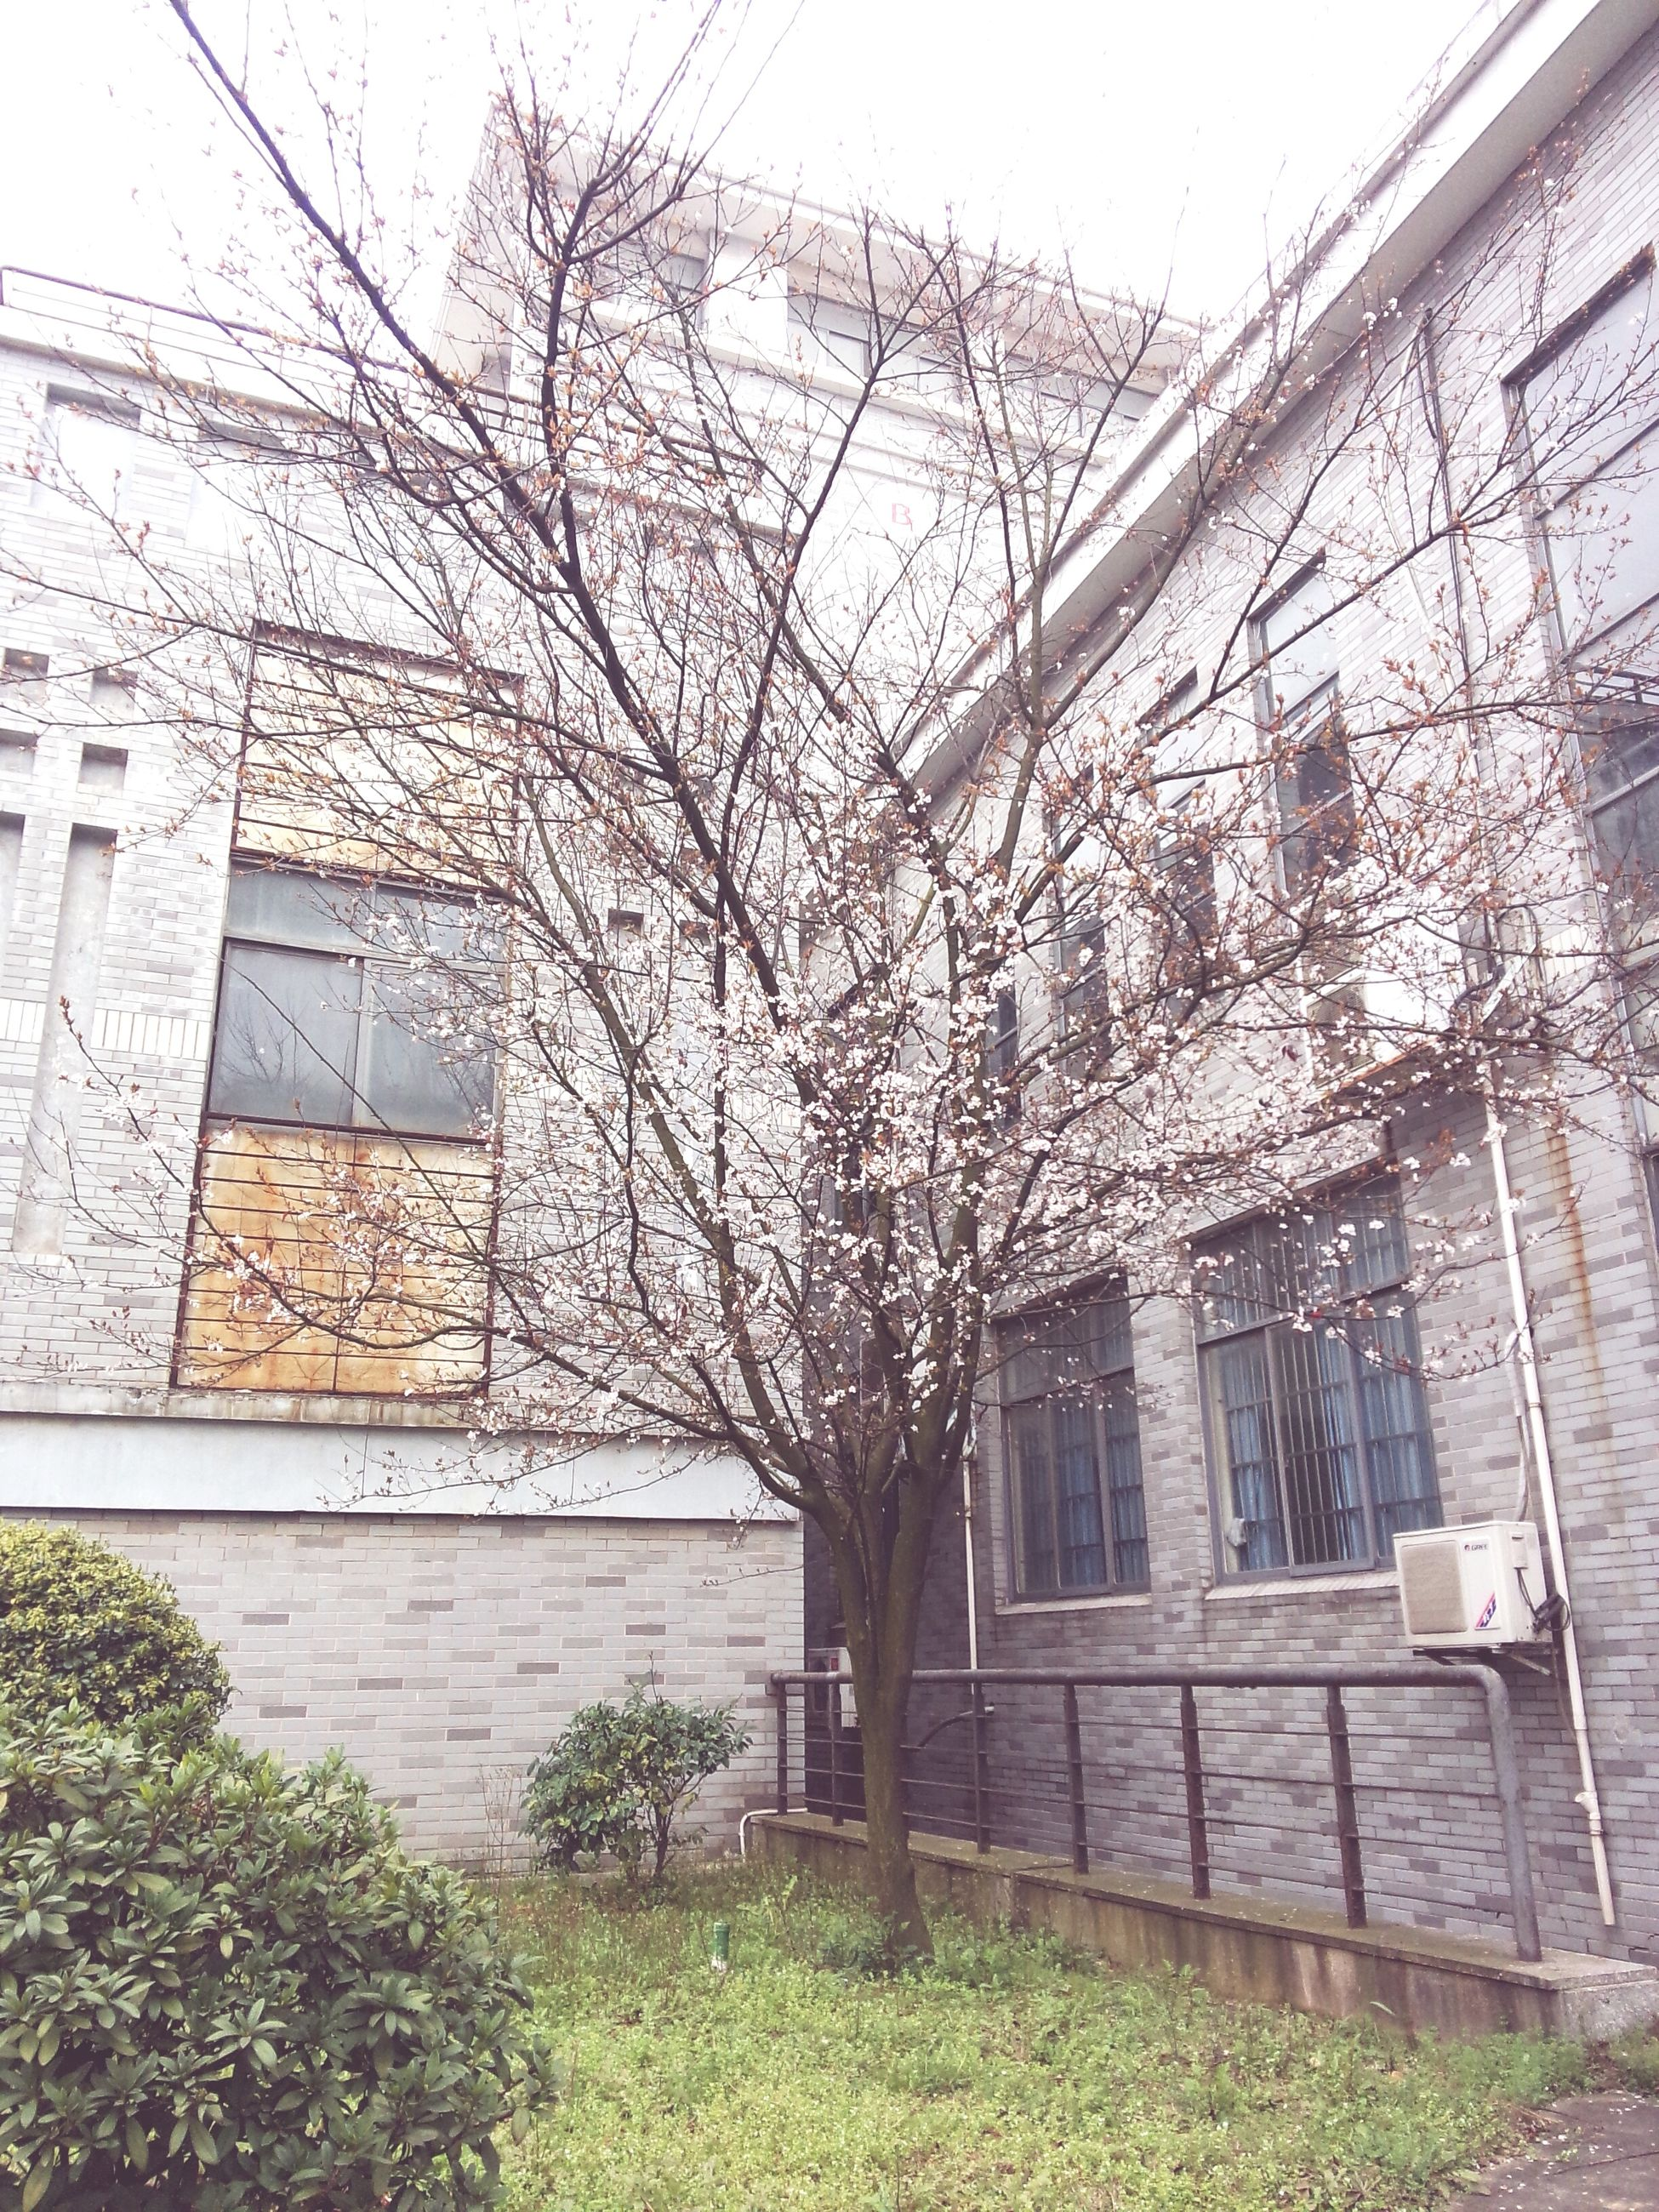 architecture, building exterior, built structure, bare tree, tree, branch, window, building, house, day, residential building, residential structure, ivy, wall - building feature, plant, city, growth, outdoors, no people, sky